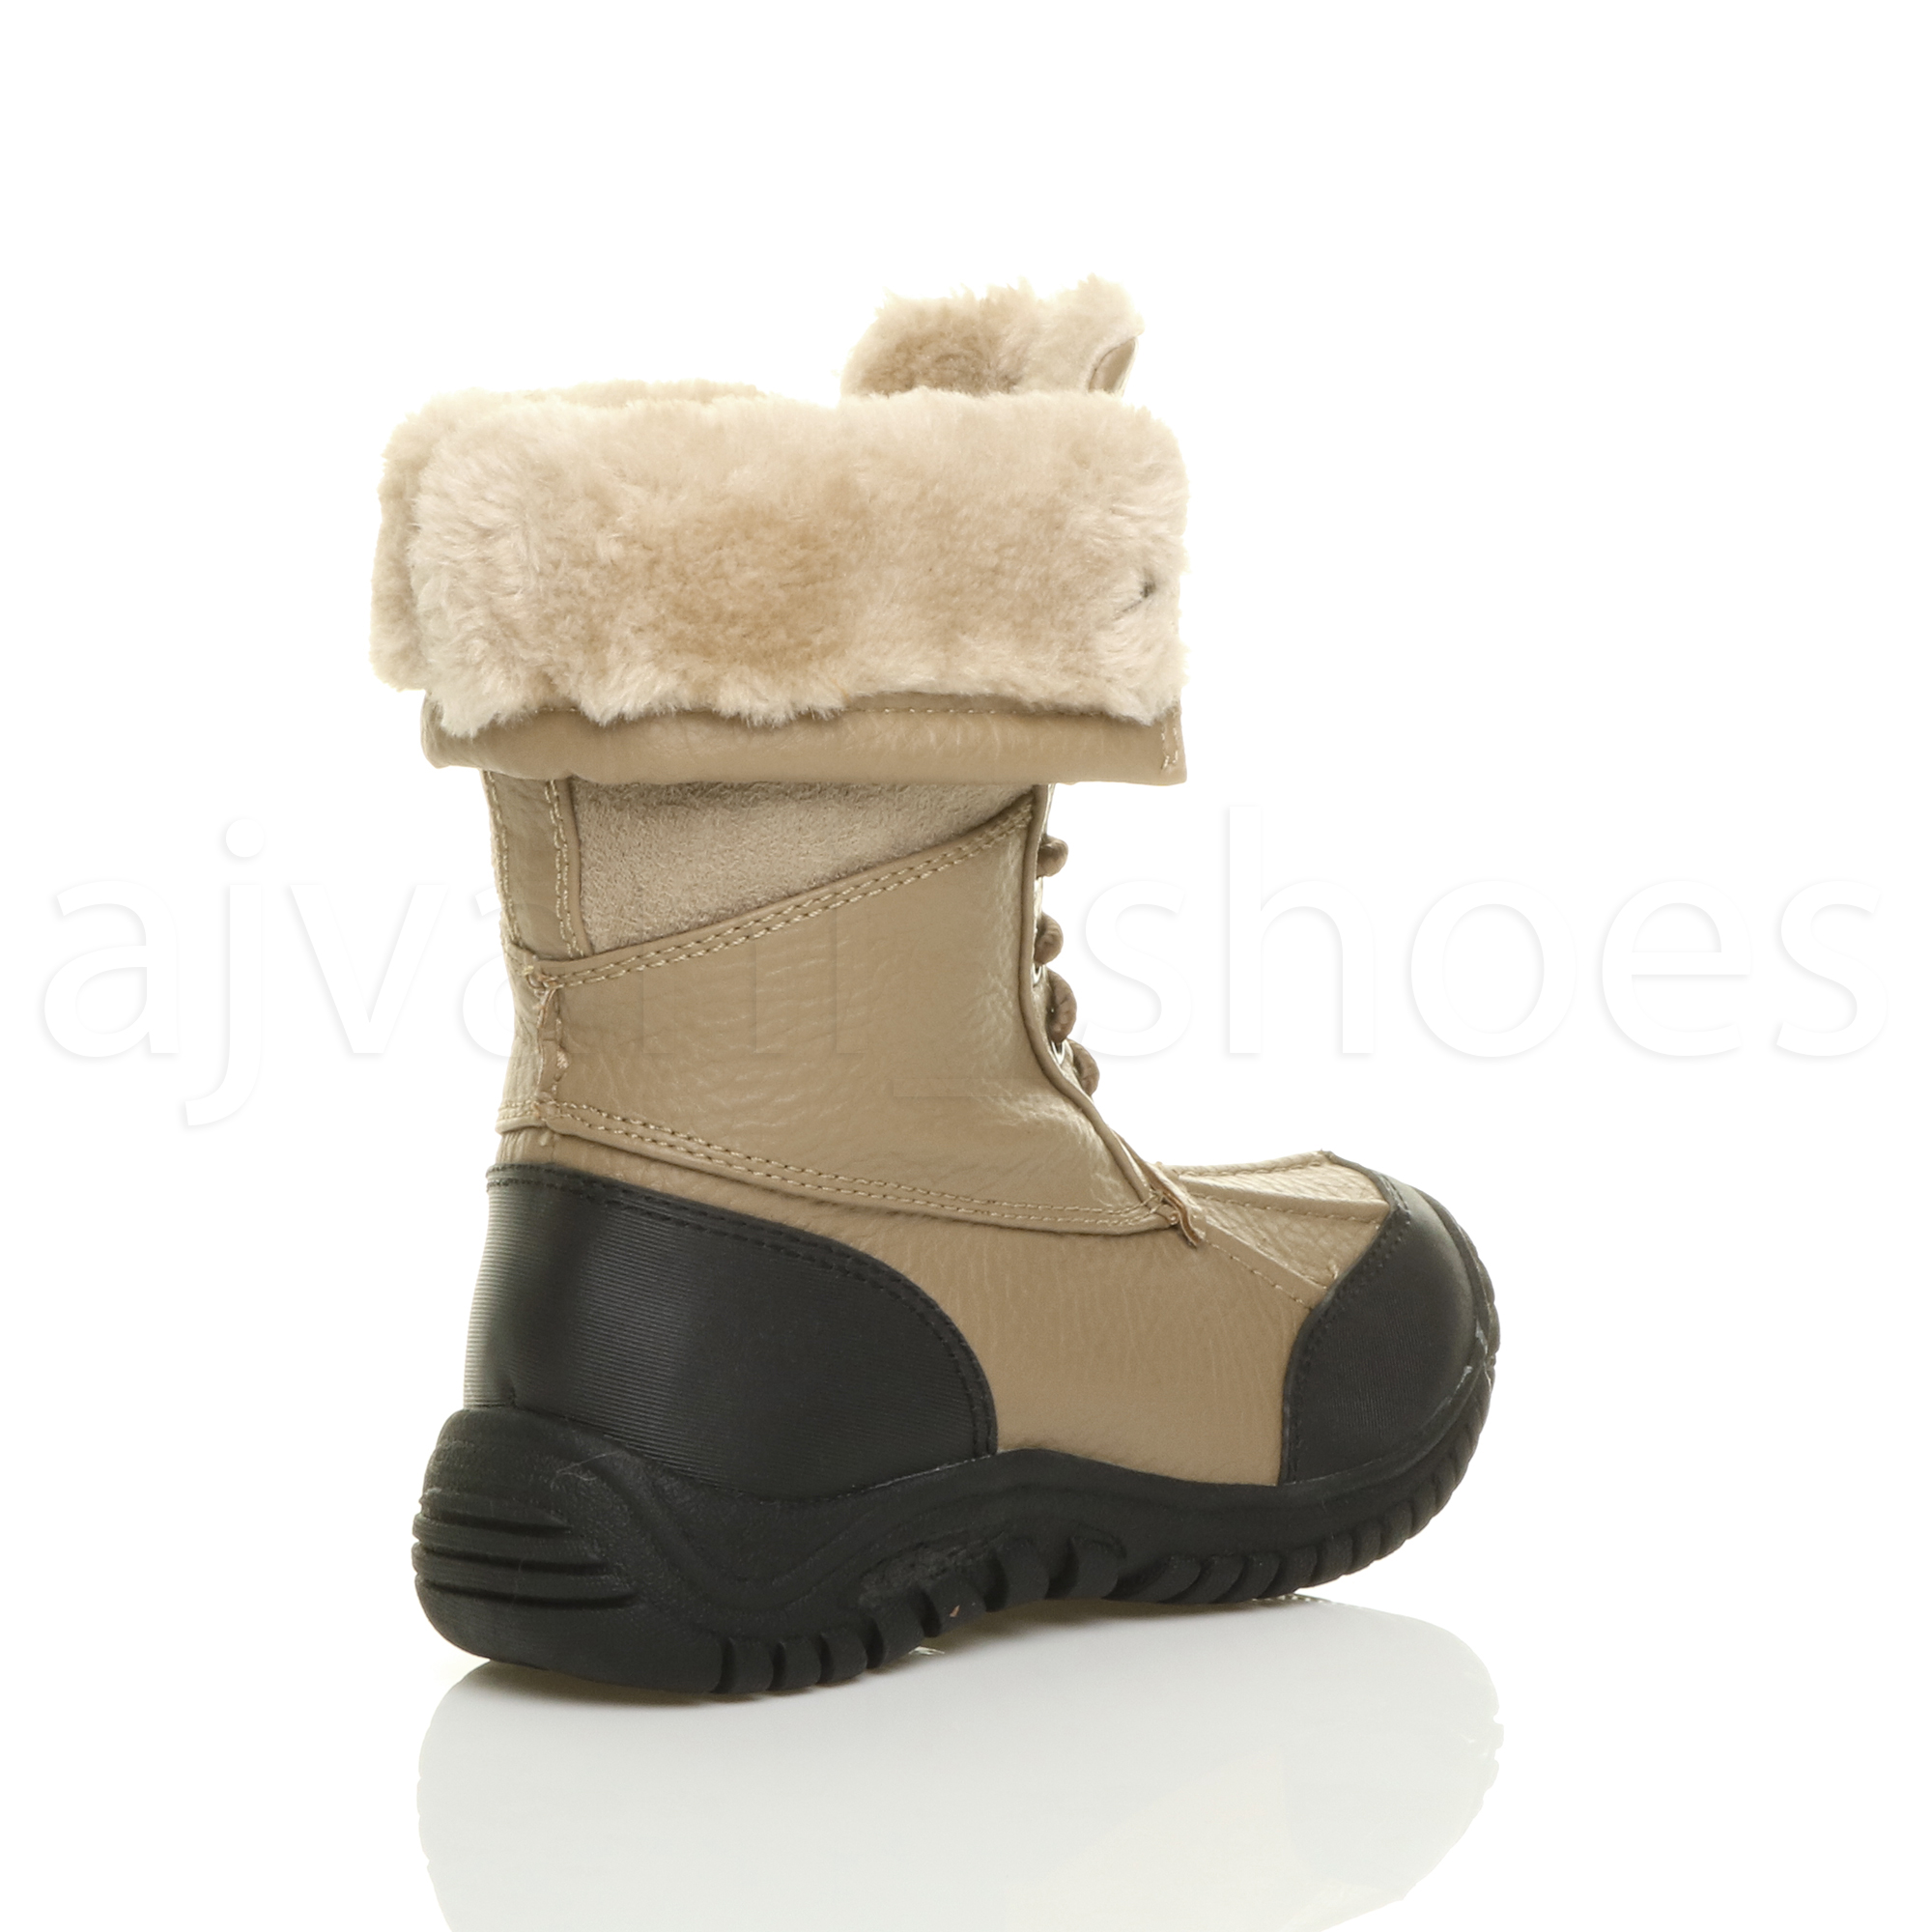 Free shipping BOTH ways on fur lined leather boots, from our vast selection of styles. Fast delivery, and 24/7/ real-person service with a smile. Click or call